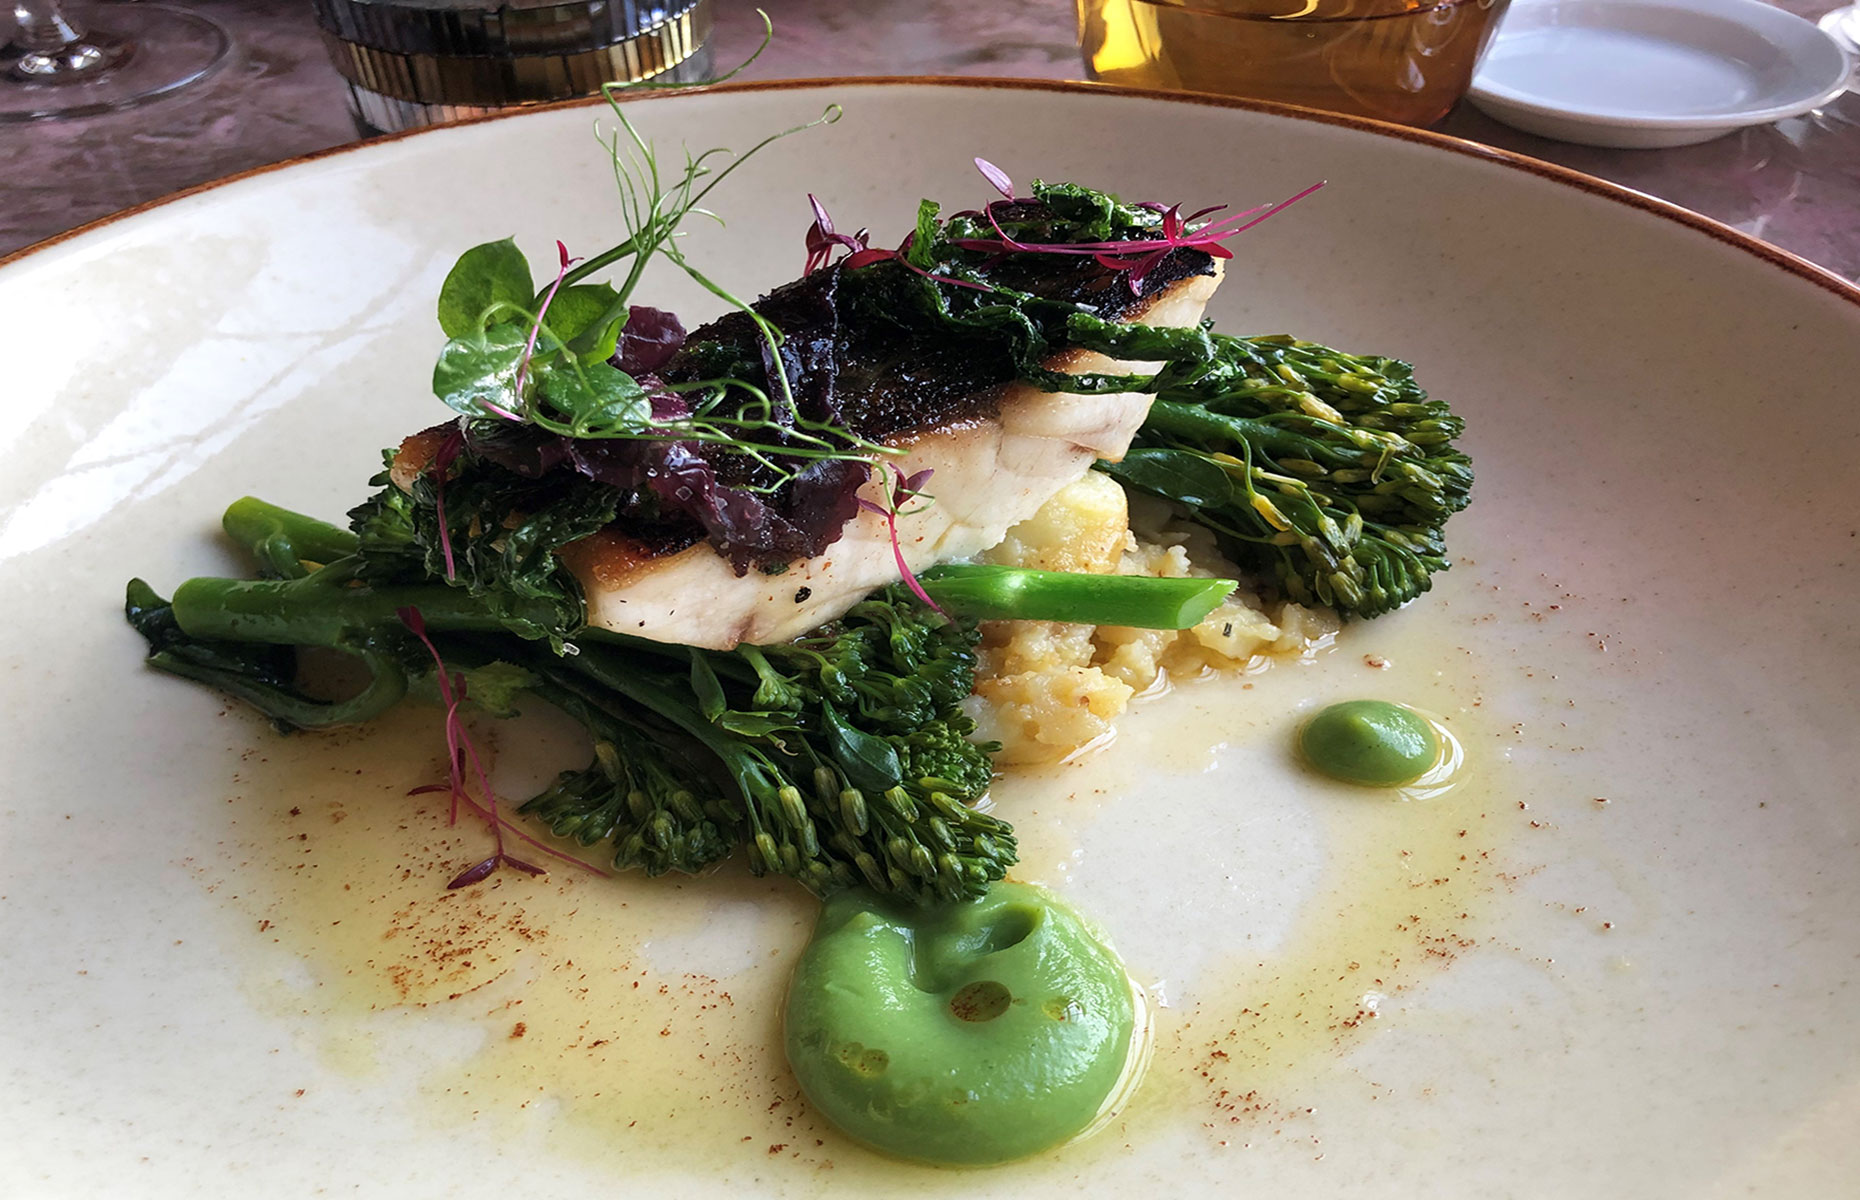 Stonebass with broccoli and potatoes (Image: Daisy Meager)